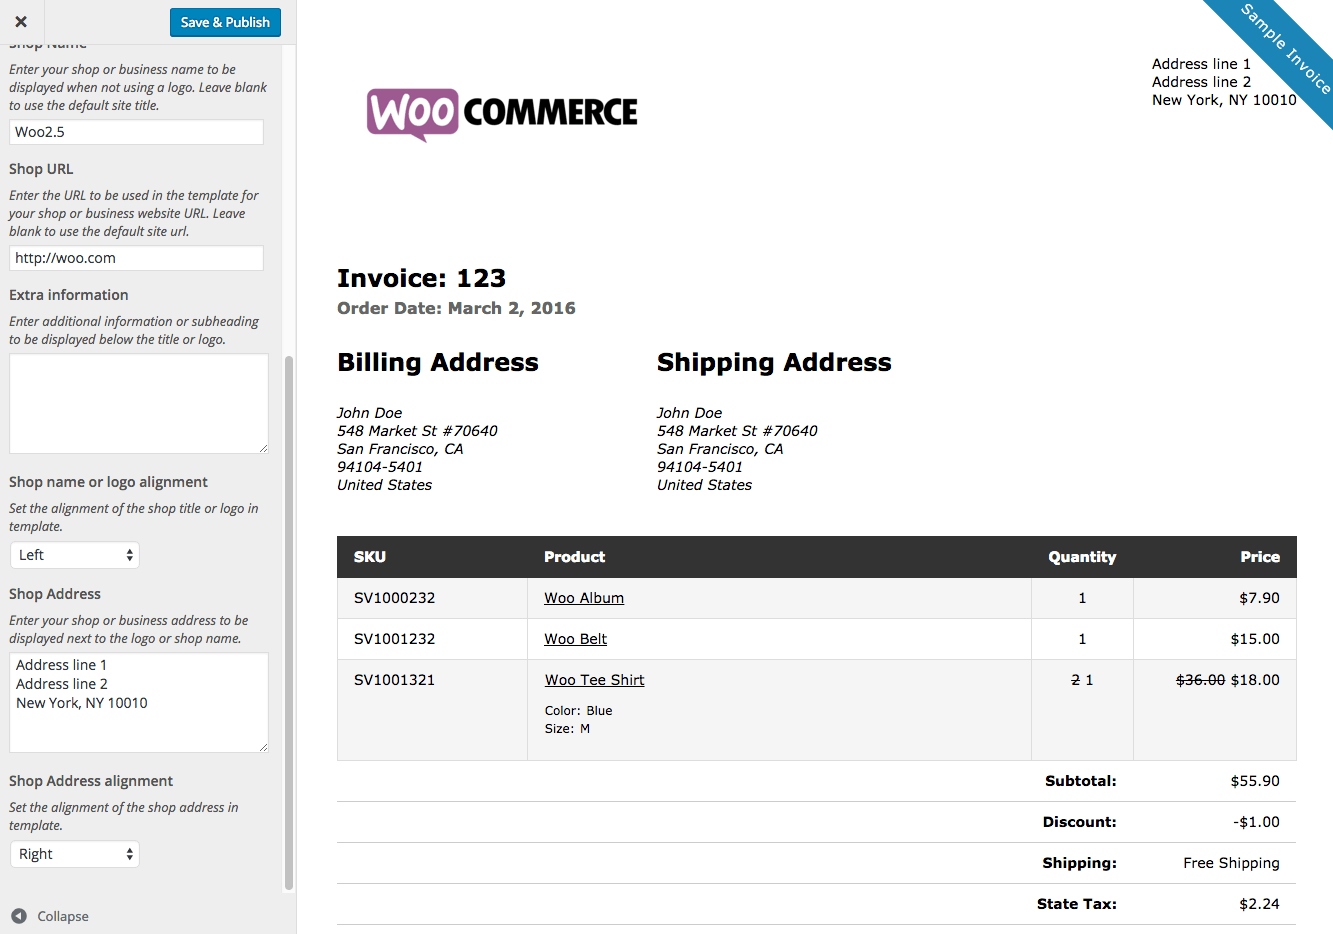 Opposenewapstandardsus  Unique Print Invoices Amp Packing Lists  Woocommerce With Engaging Woocommerce Print Invoices  Packing Lists Customizer With Archaic What Is An Invoice Payment Also Apple Invoicing Software In Addition Simple Word Invoice Template And Recruitment Invoice As Well As Invoice Discounting Companies Additionally Template For Invoice Free From Woocommercecom With Opposenewapstandardsus  Engaging Print Invoices Amp Packing Lists  Woocommerce With Archaic Woocommerce Print Invoices  Packing Lists Customizer And Unique What Is An Invoice Payment Also Apple Invoicing Software In Addition Simple Word Invoice Template From Woocommercecom